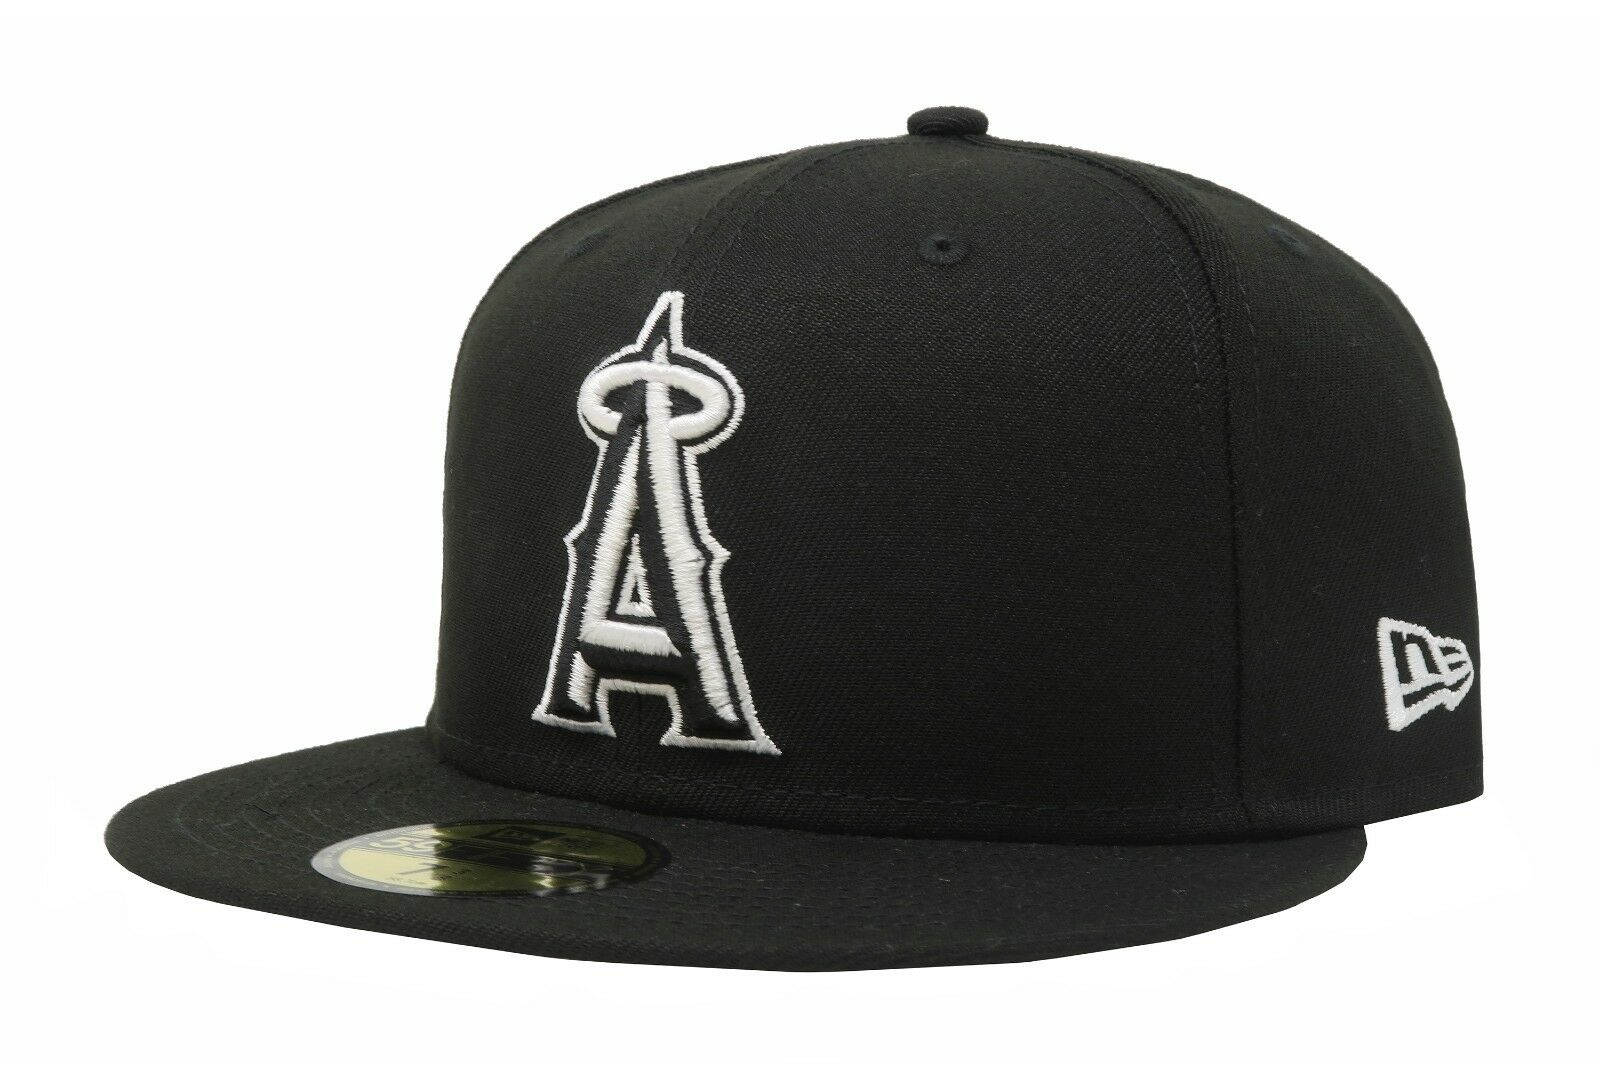 64a617fb518 Era 59fifty Fitted Hat Los Angeles Angels of Anaheim Black White Cap ...